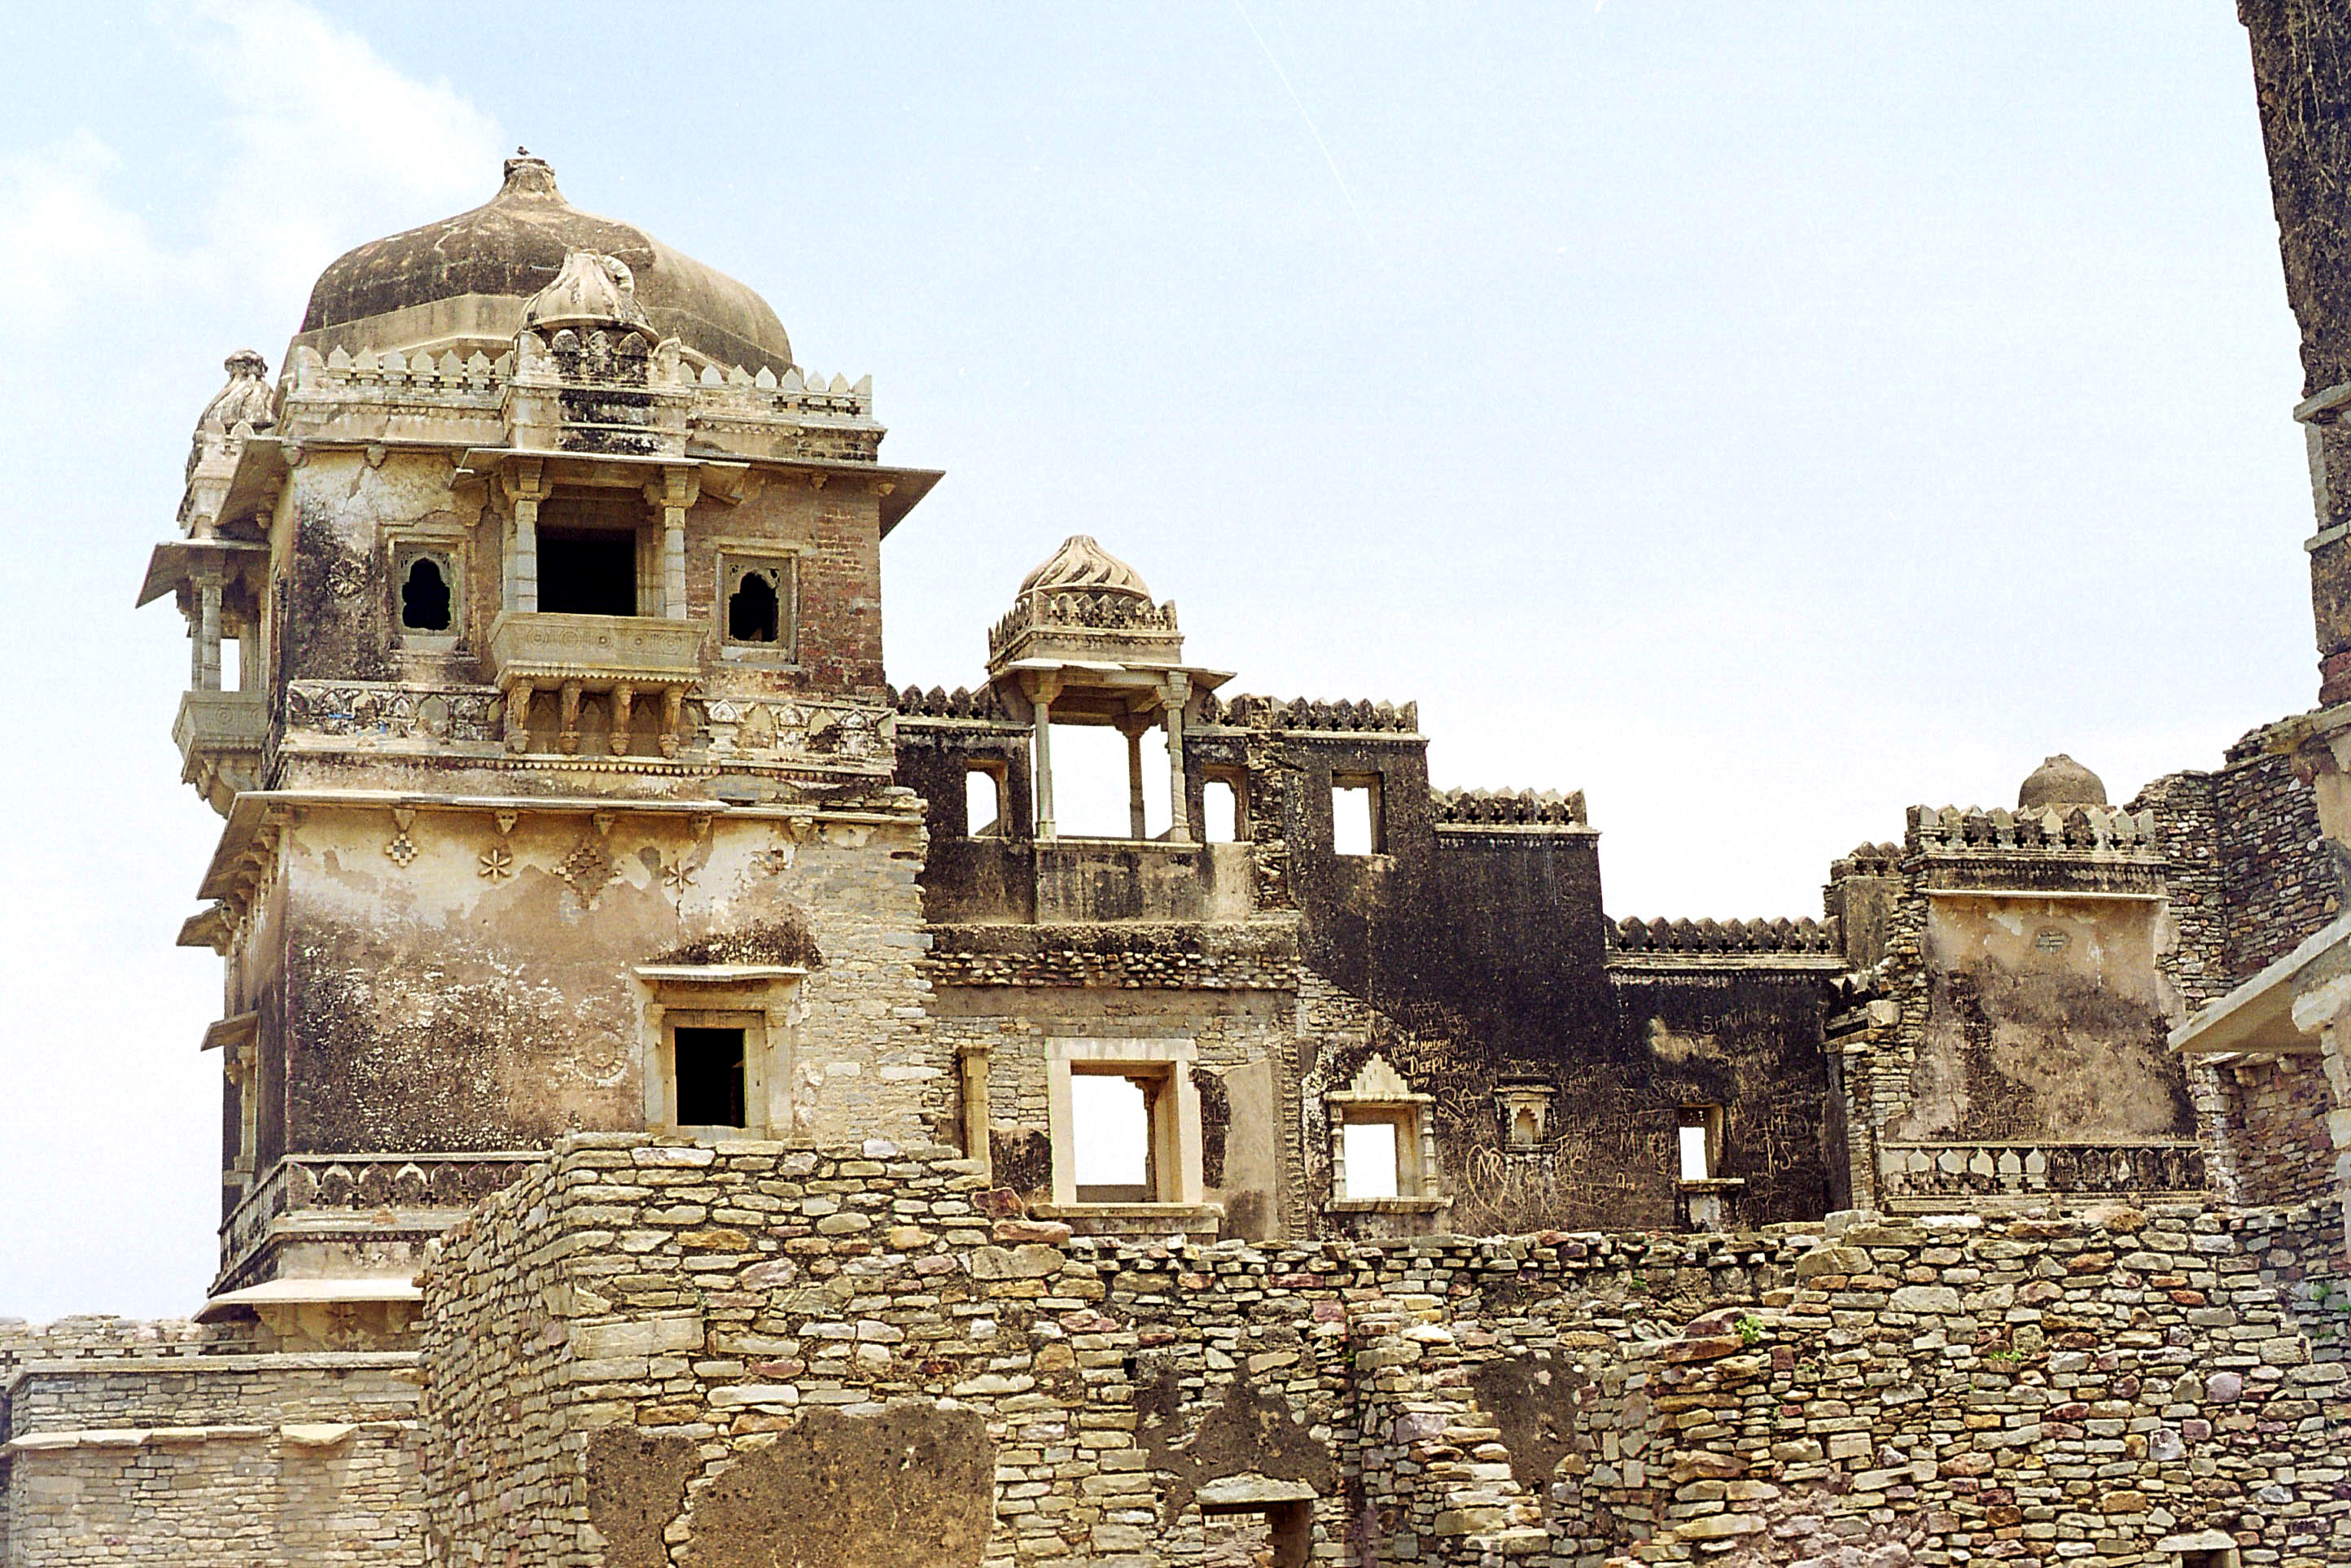 Rana Khumba Palace - Must Visit places in Chittorgarh